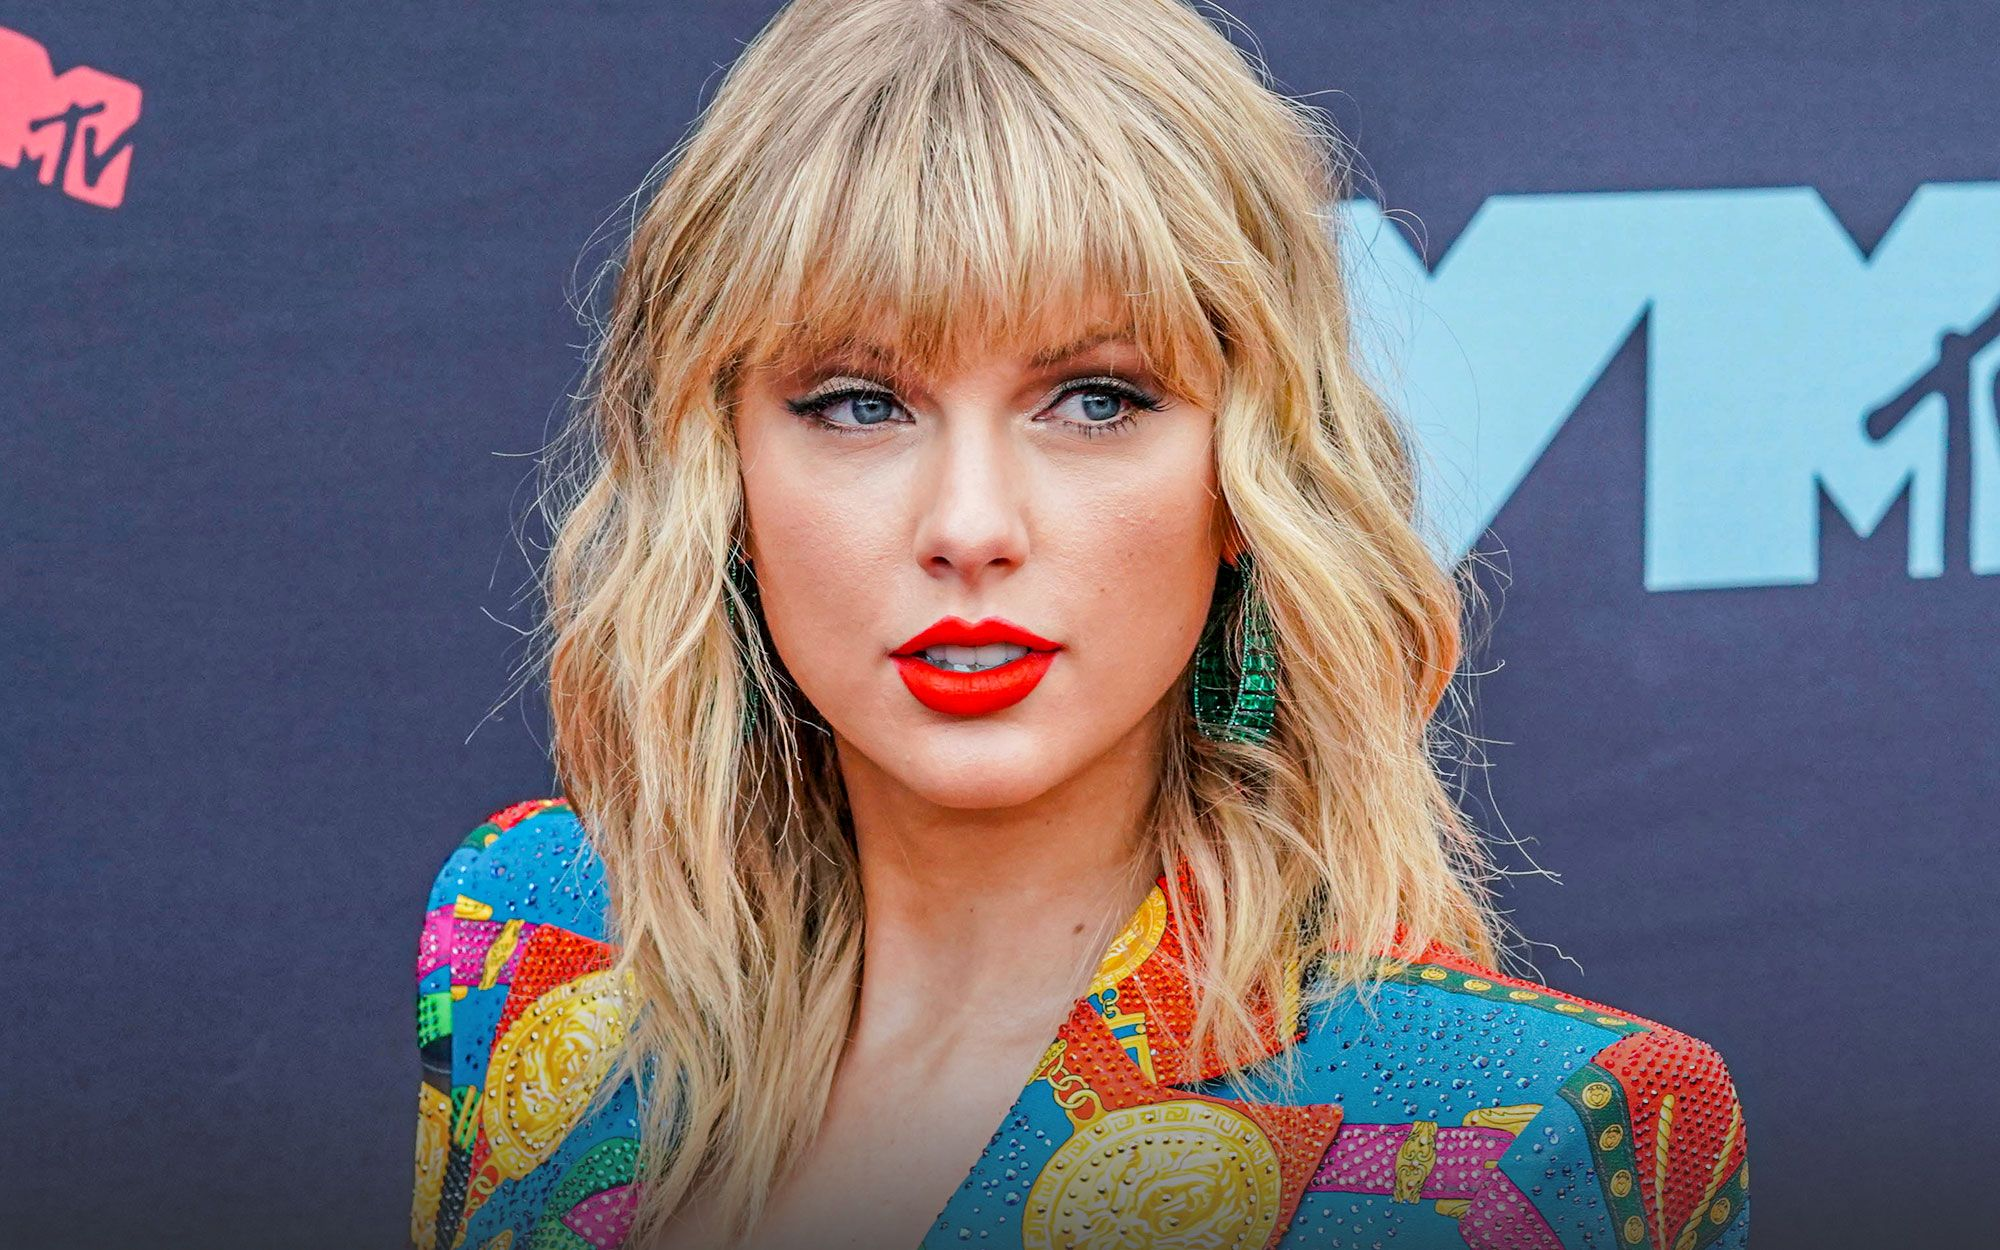 Taylor Swift Makes Her Leftwing Status Official as She Plans to Promote Liberal Causes